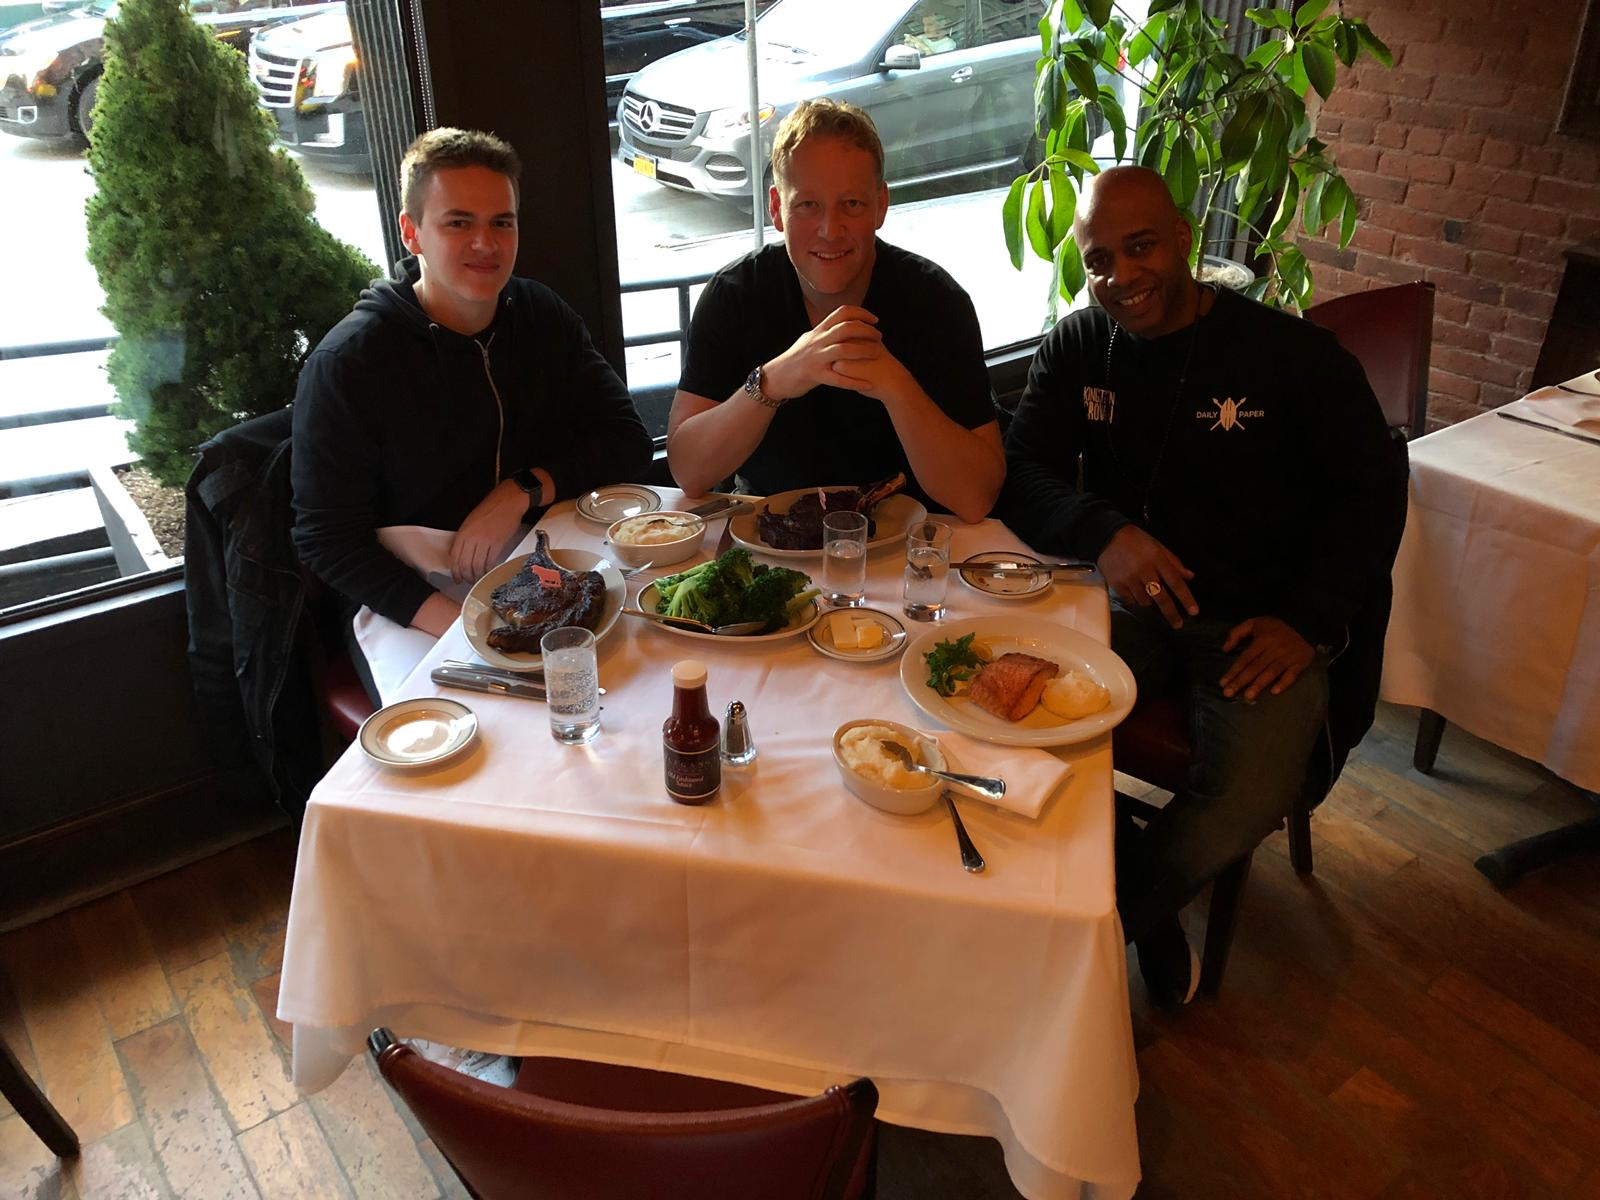 Sebastien Debaenst New York With Eelco de Boer and Deams